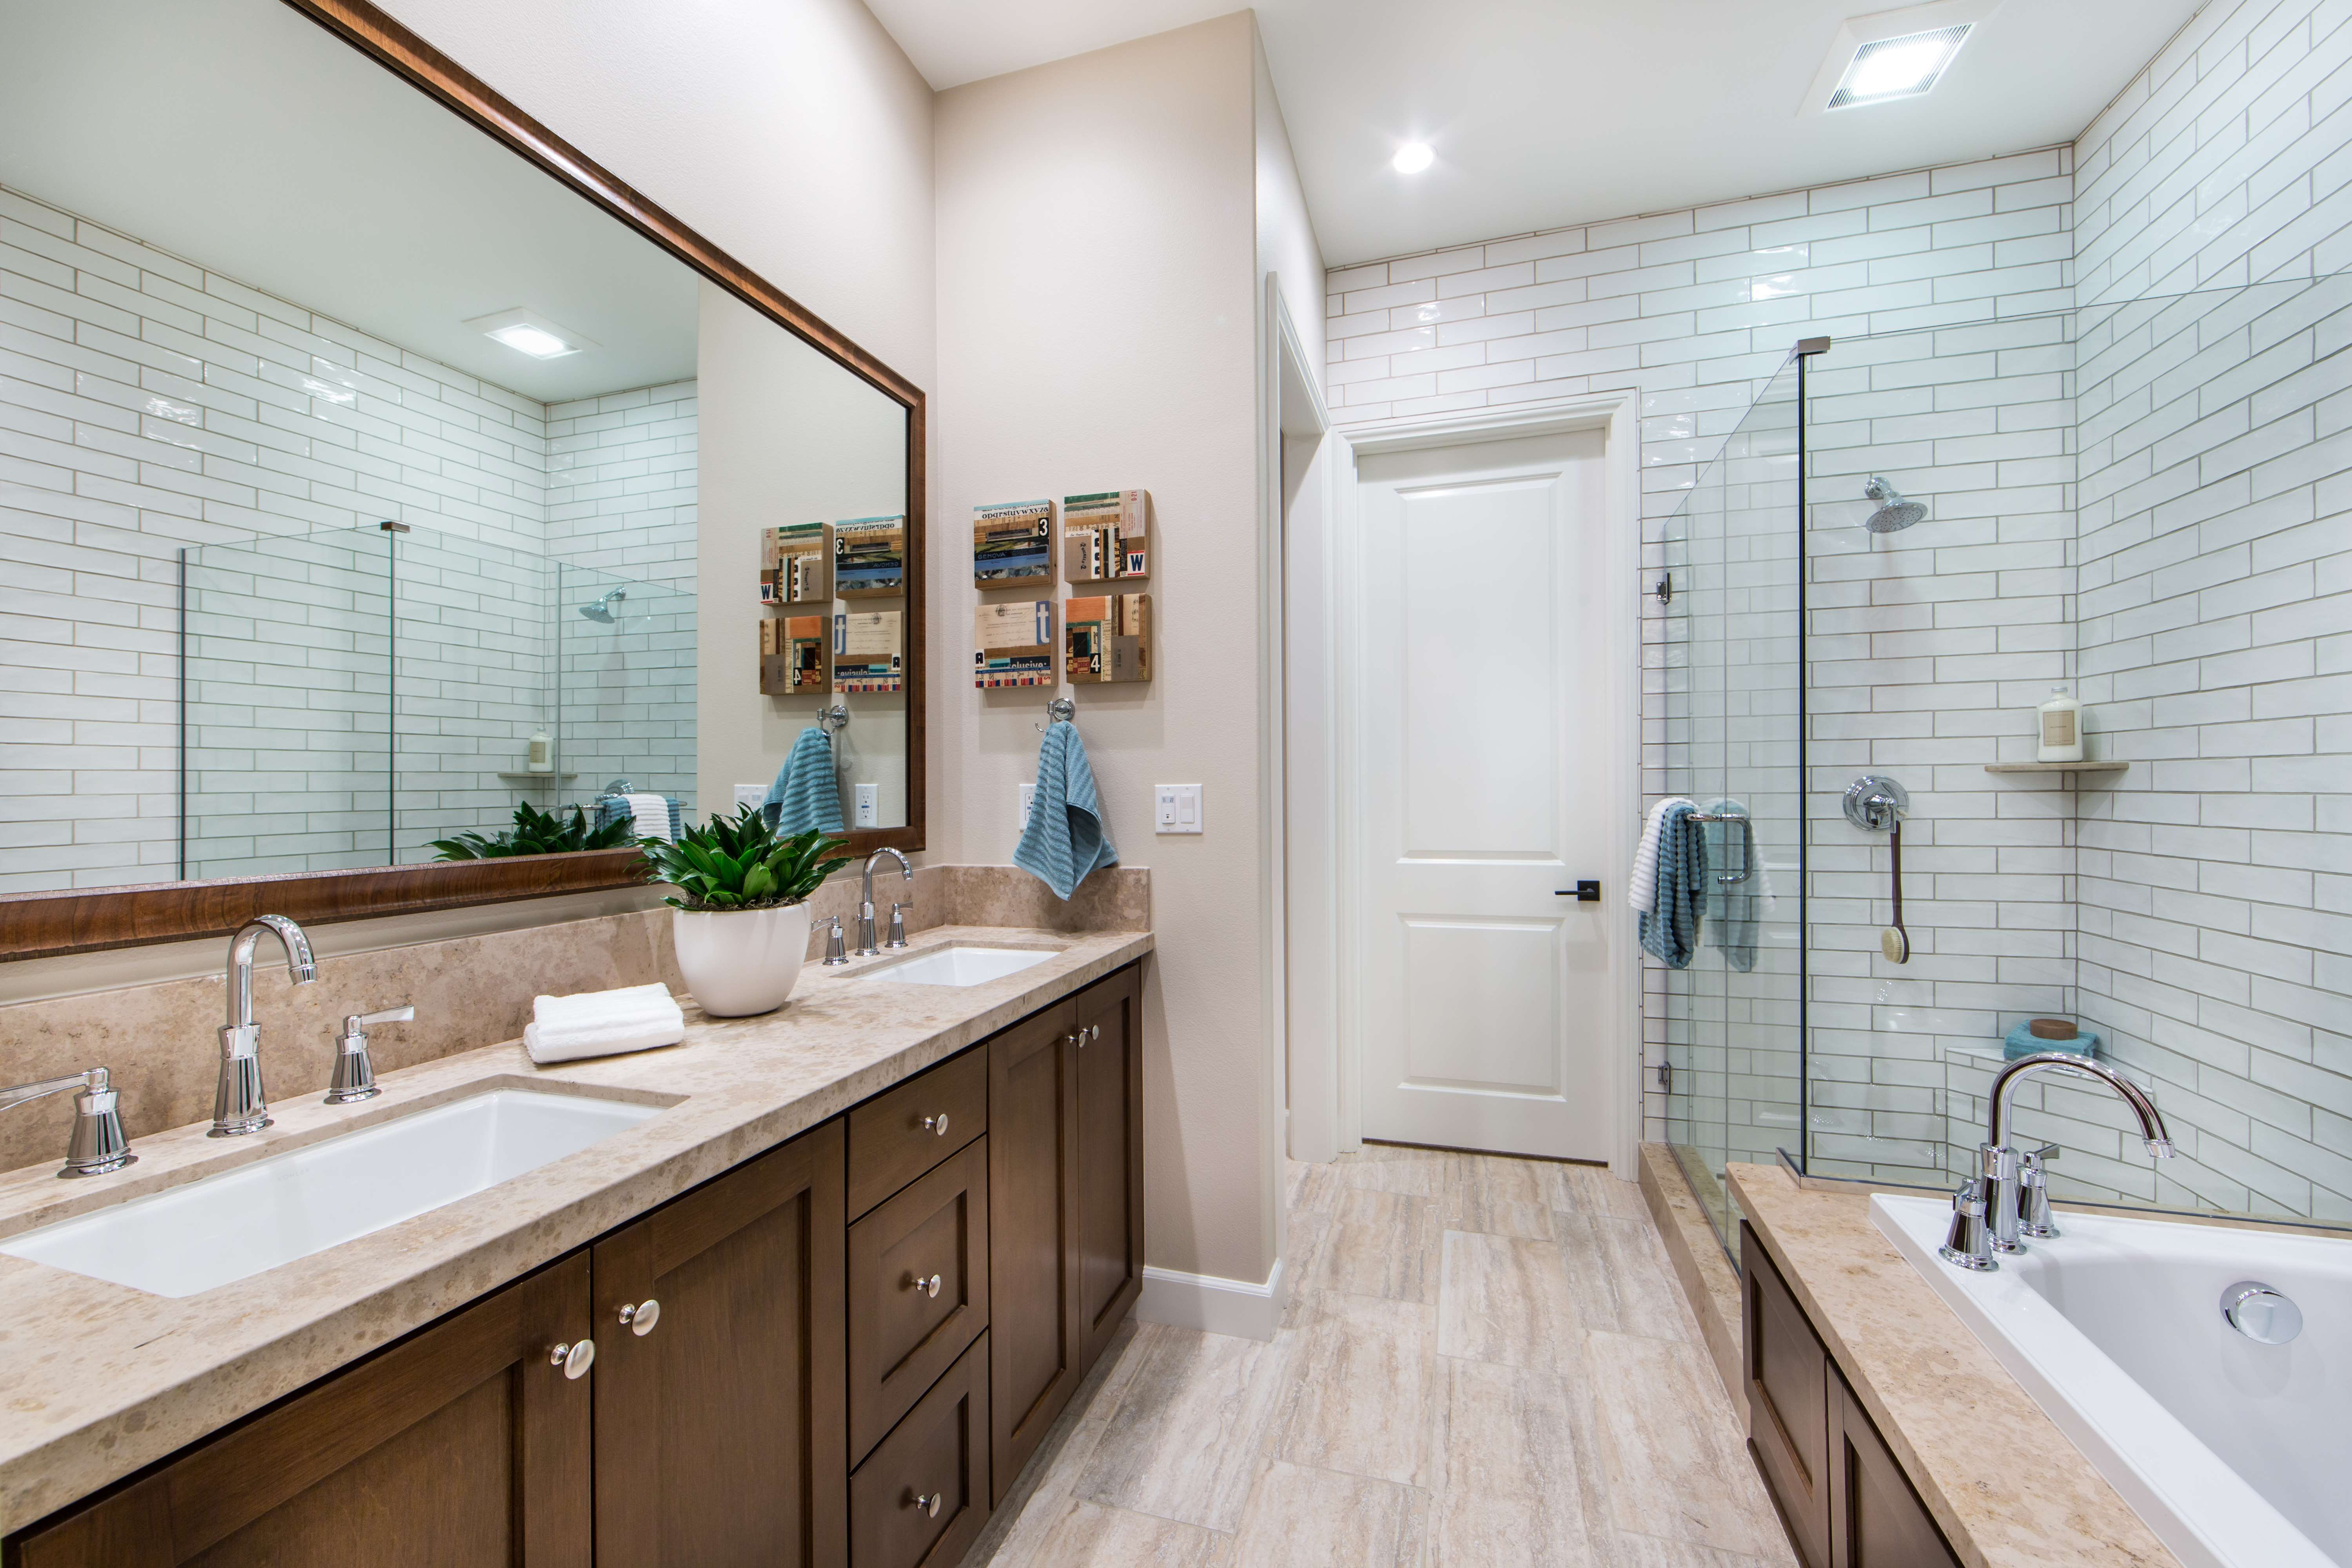 Master Bathroom at Marin Residence 1 in Irvine